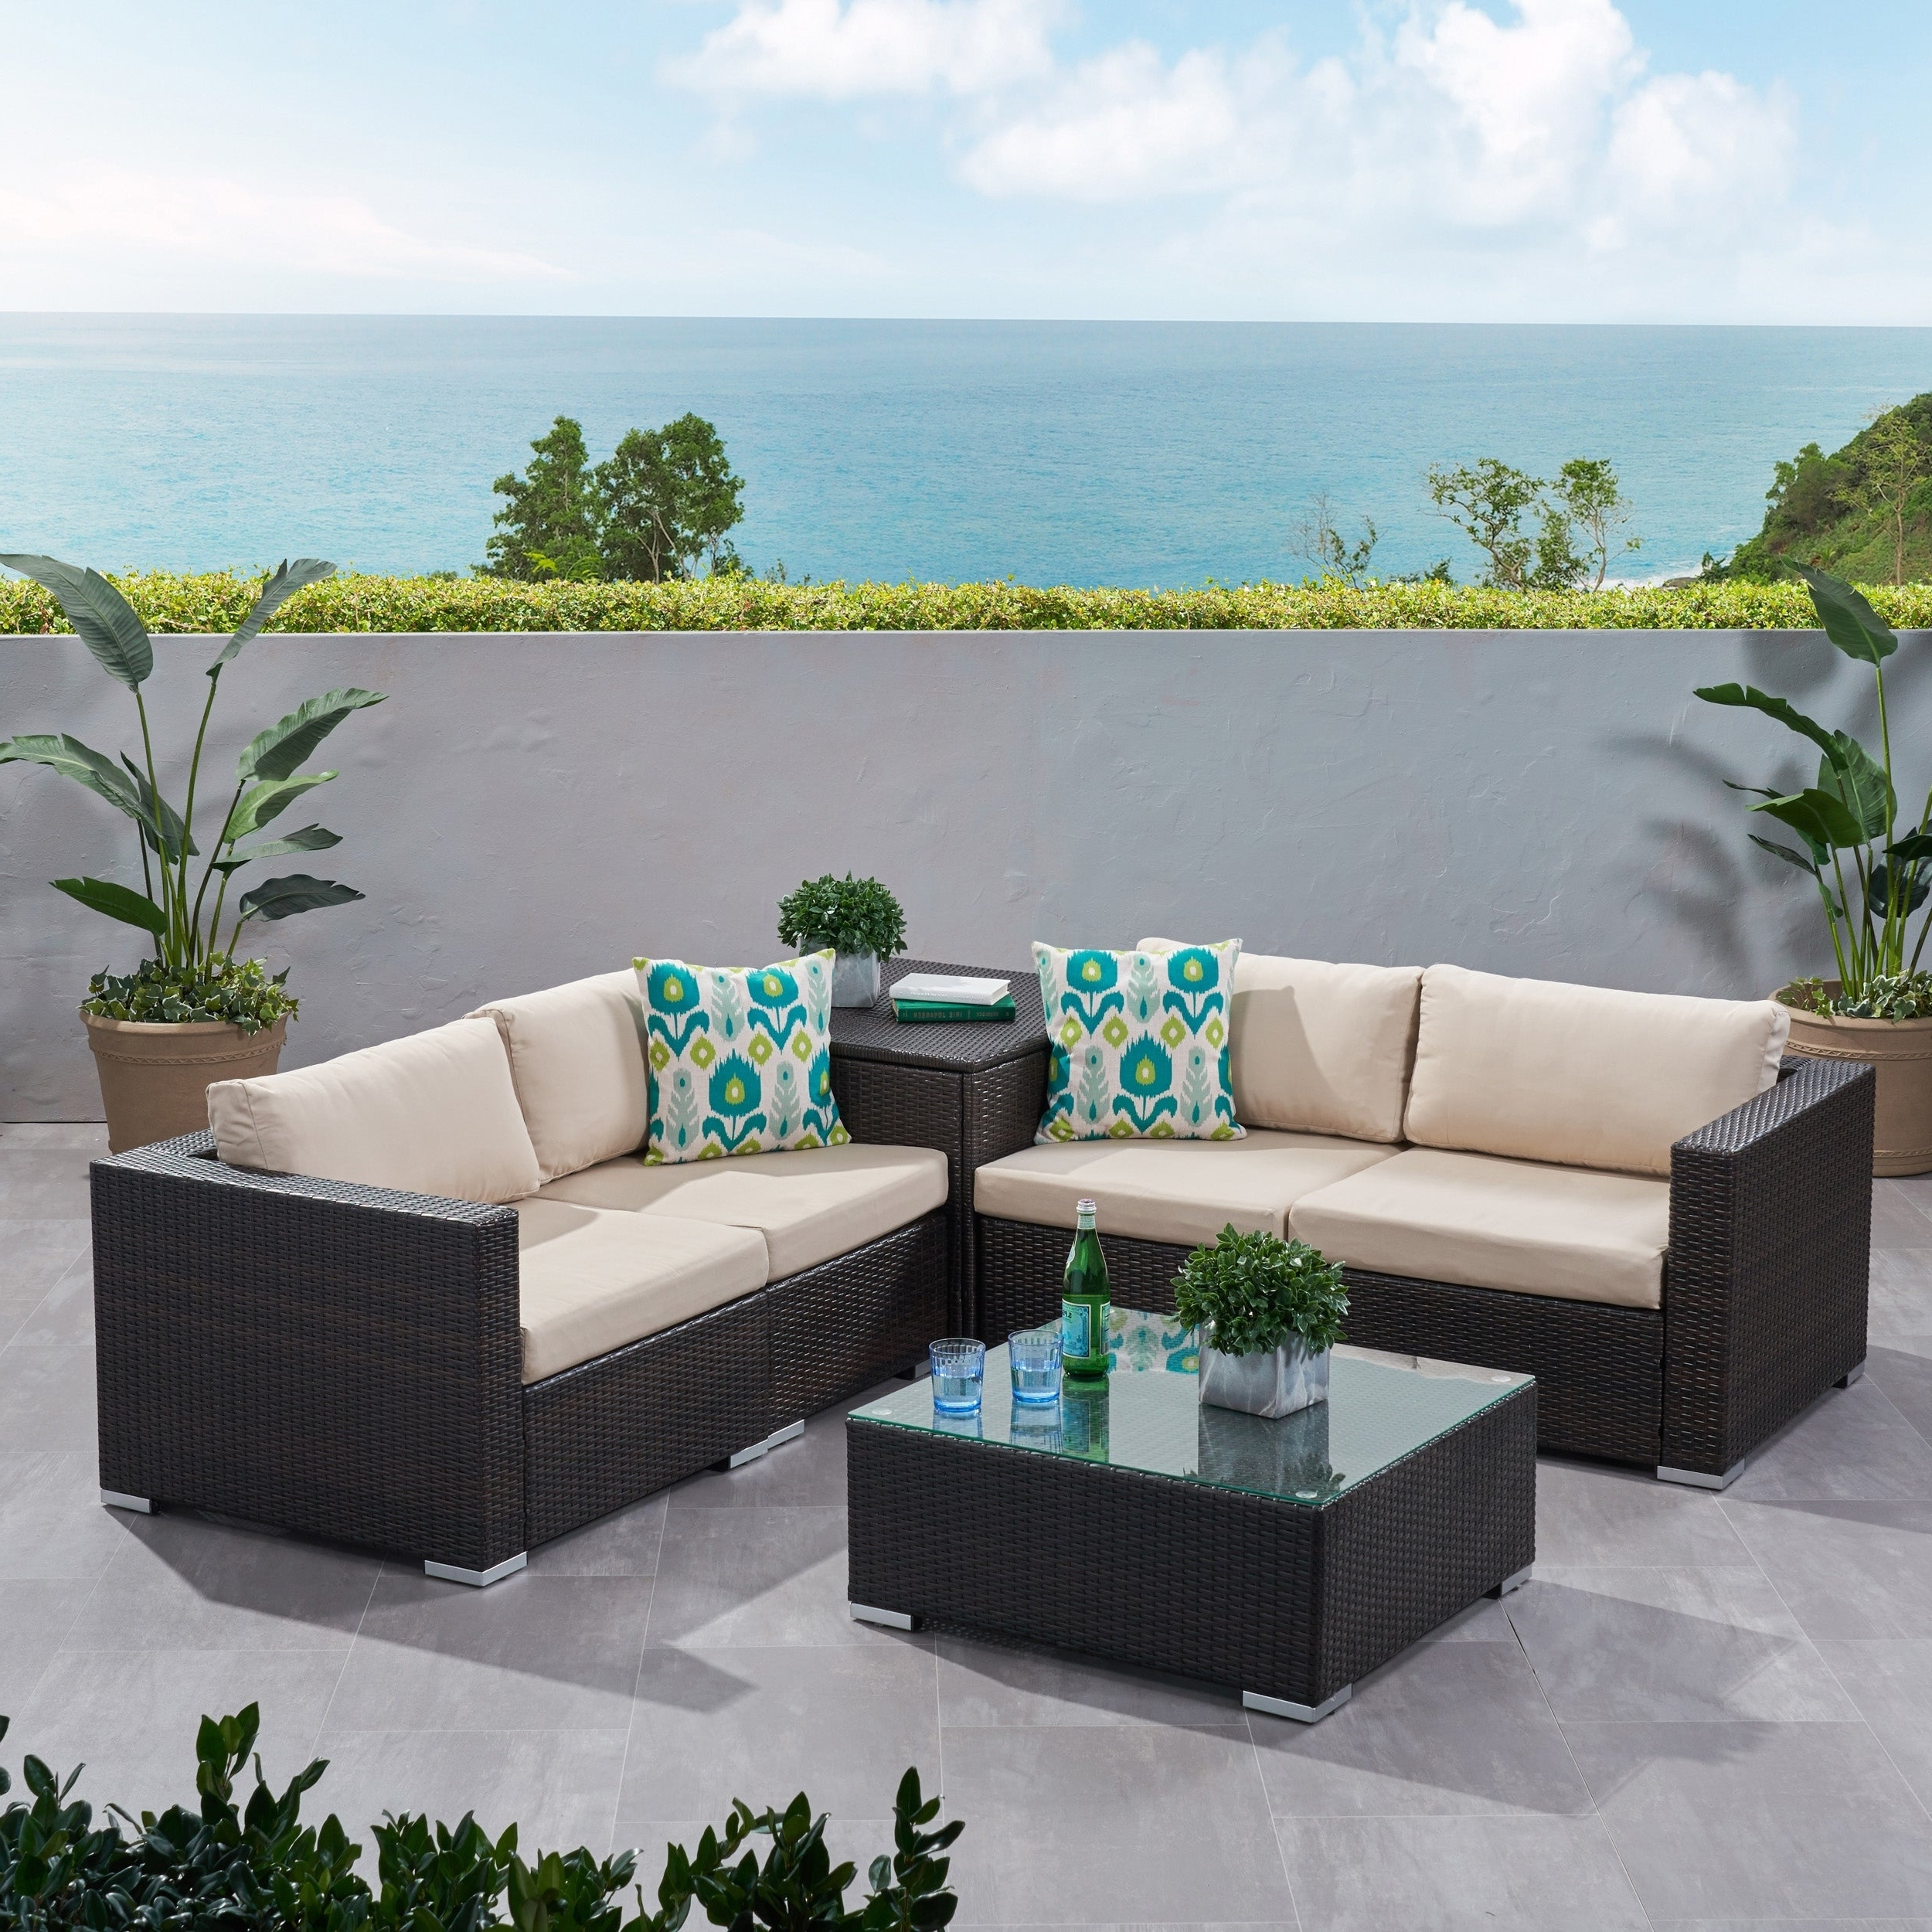 2019 Vallauris Storage Patio Sectionals With Cushions With Outdoor Sofa With Storage – Easy Craft Ideas (View 12 of 25)